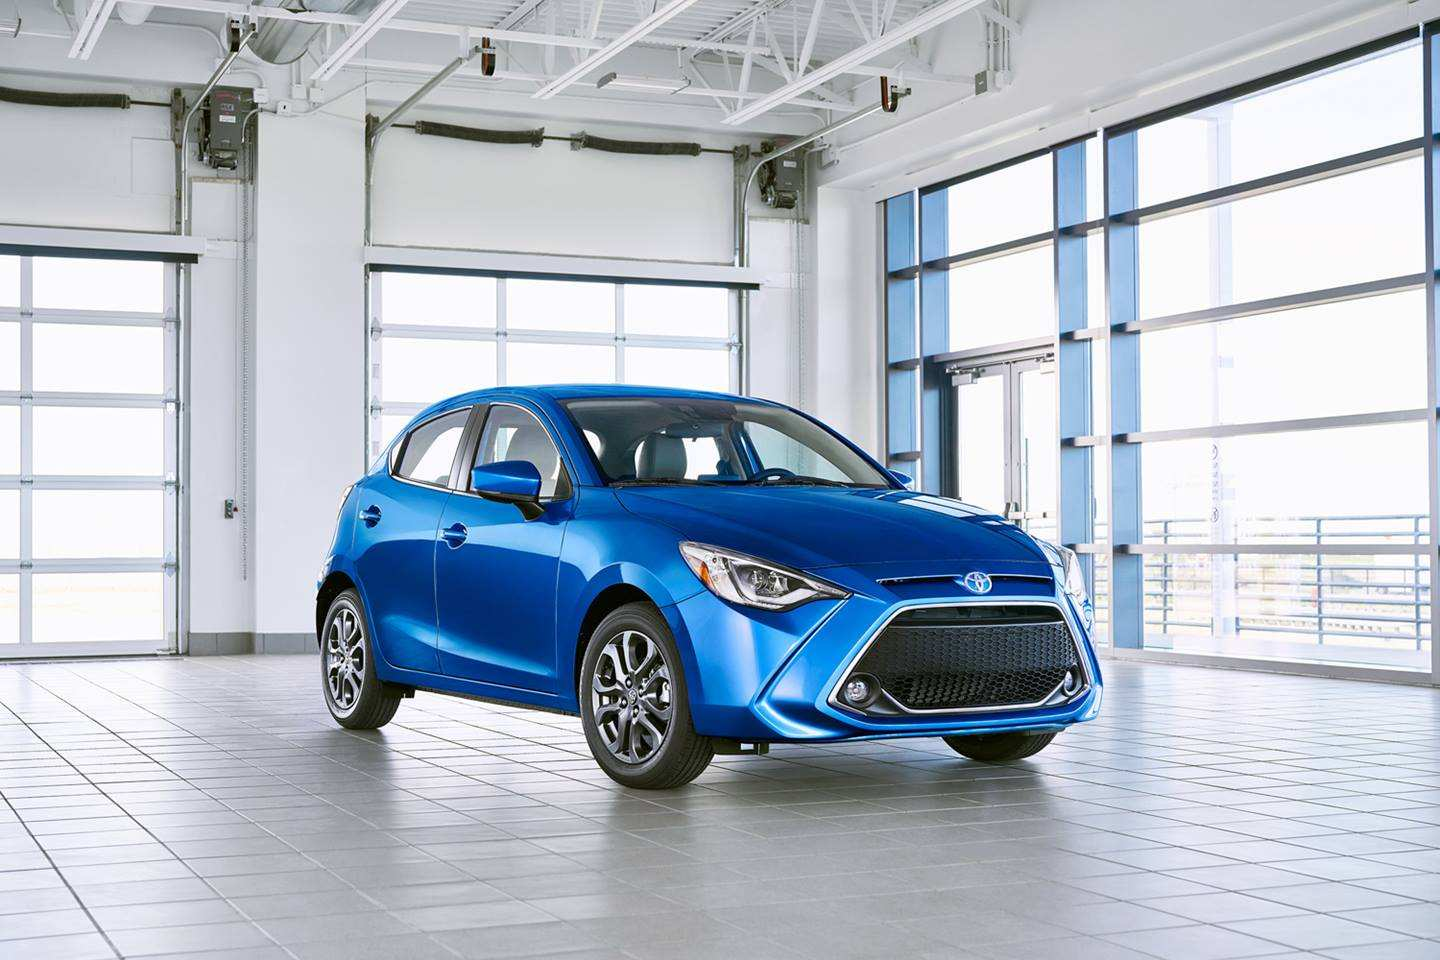 65 The Best 2020 Yaris Mazda Exterior And Interior